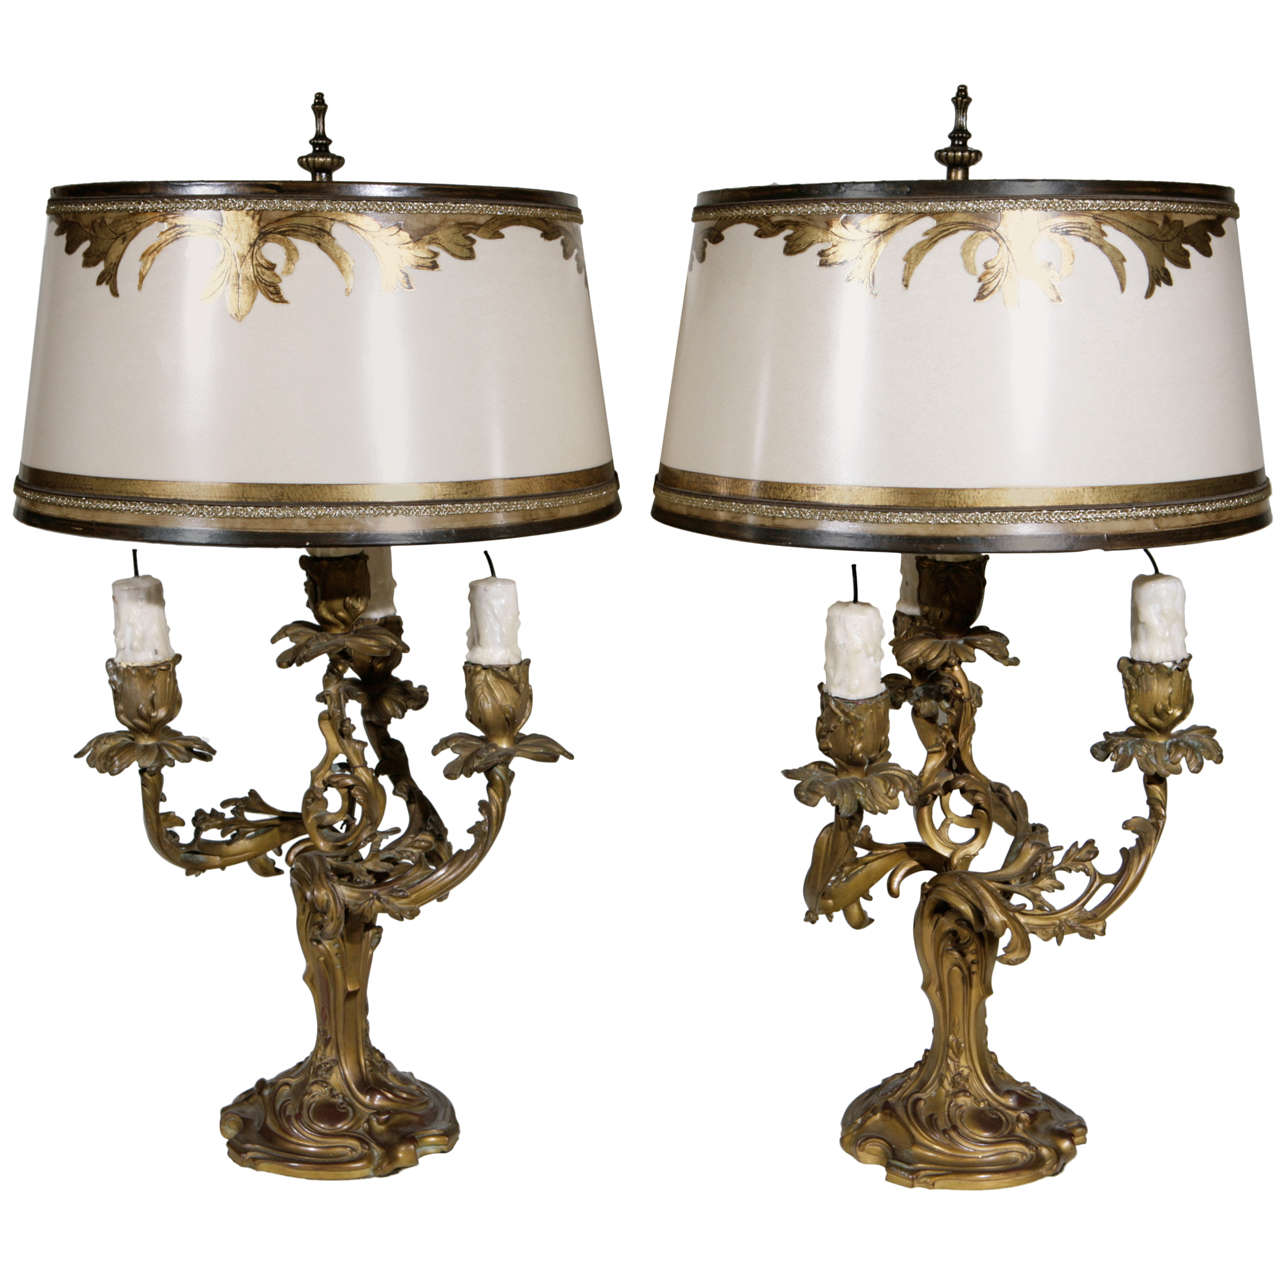 Pair Of 19th C French 3 Arm Dore Bronze Candelabra Lamps For Sale